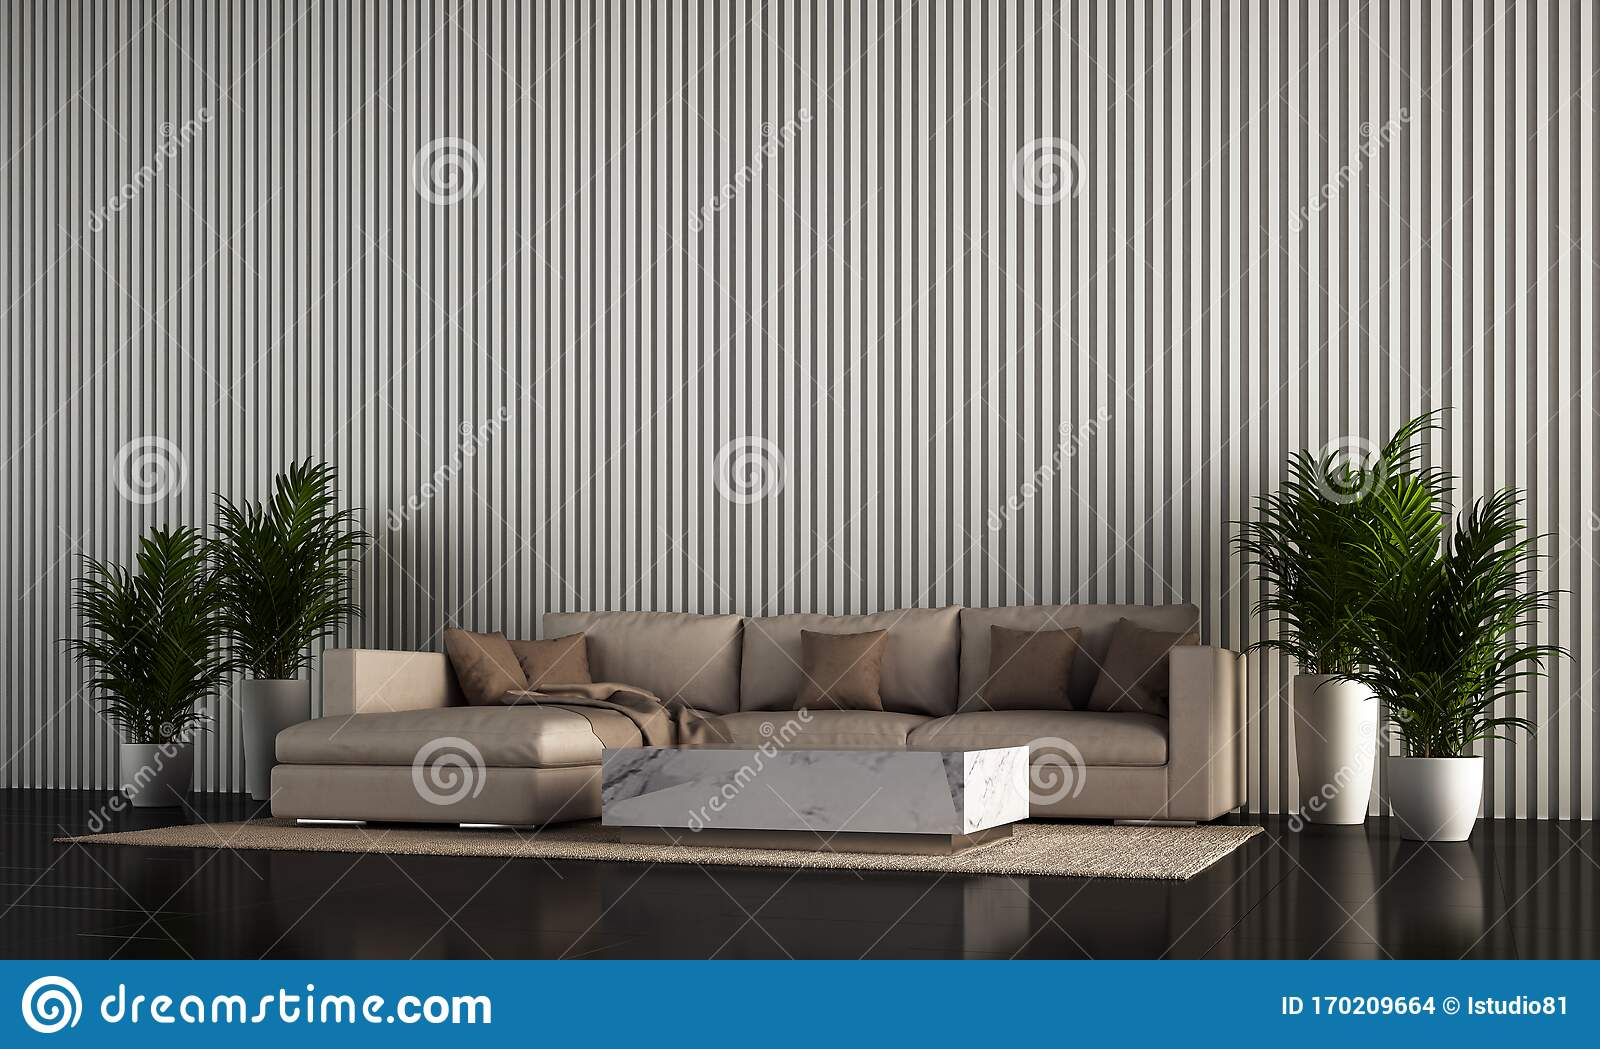 The Interior Design Of Modern Cozy Living Room And Wooden Texture Wall Background And Side Table Stock Illustration Illustration Of Bathe Area 170209664